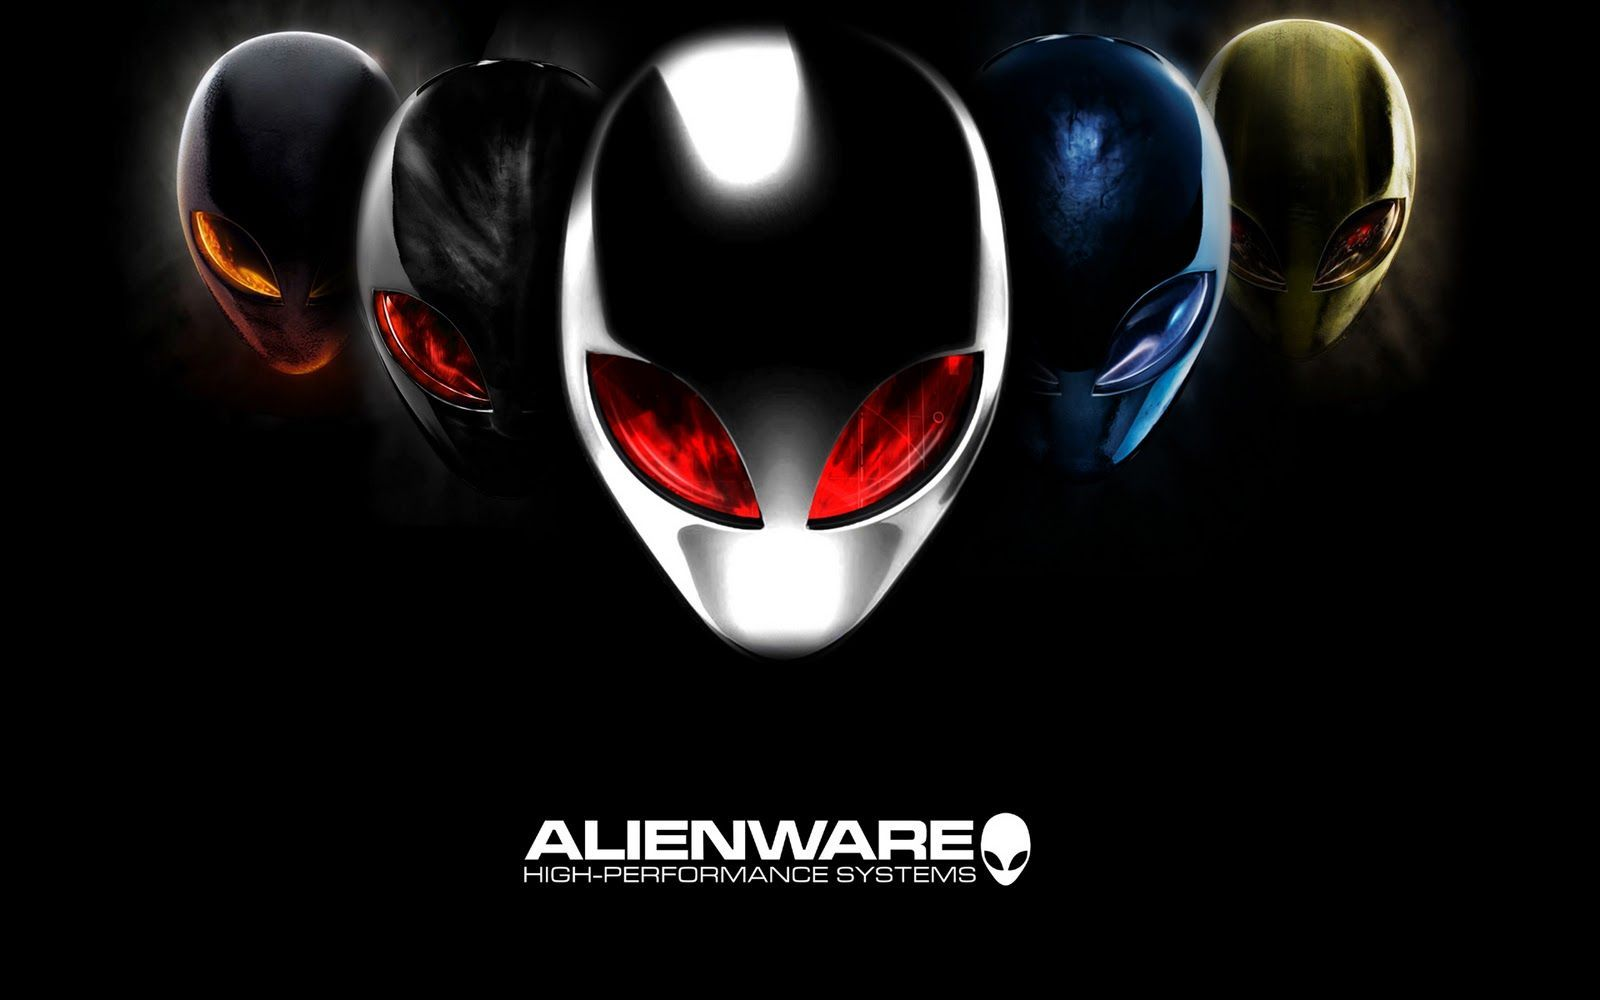 alienware laptop wallpaper 281